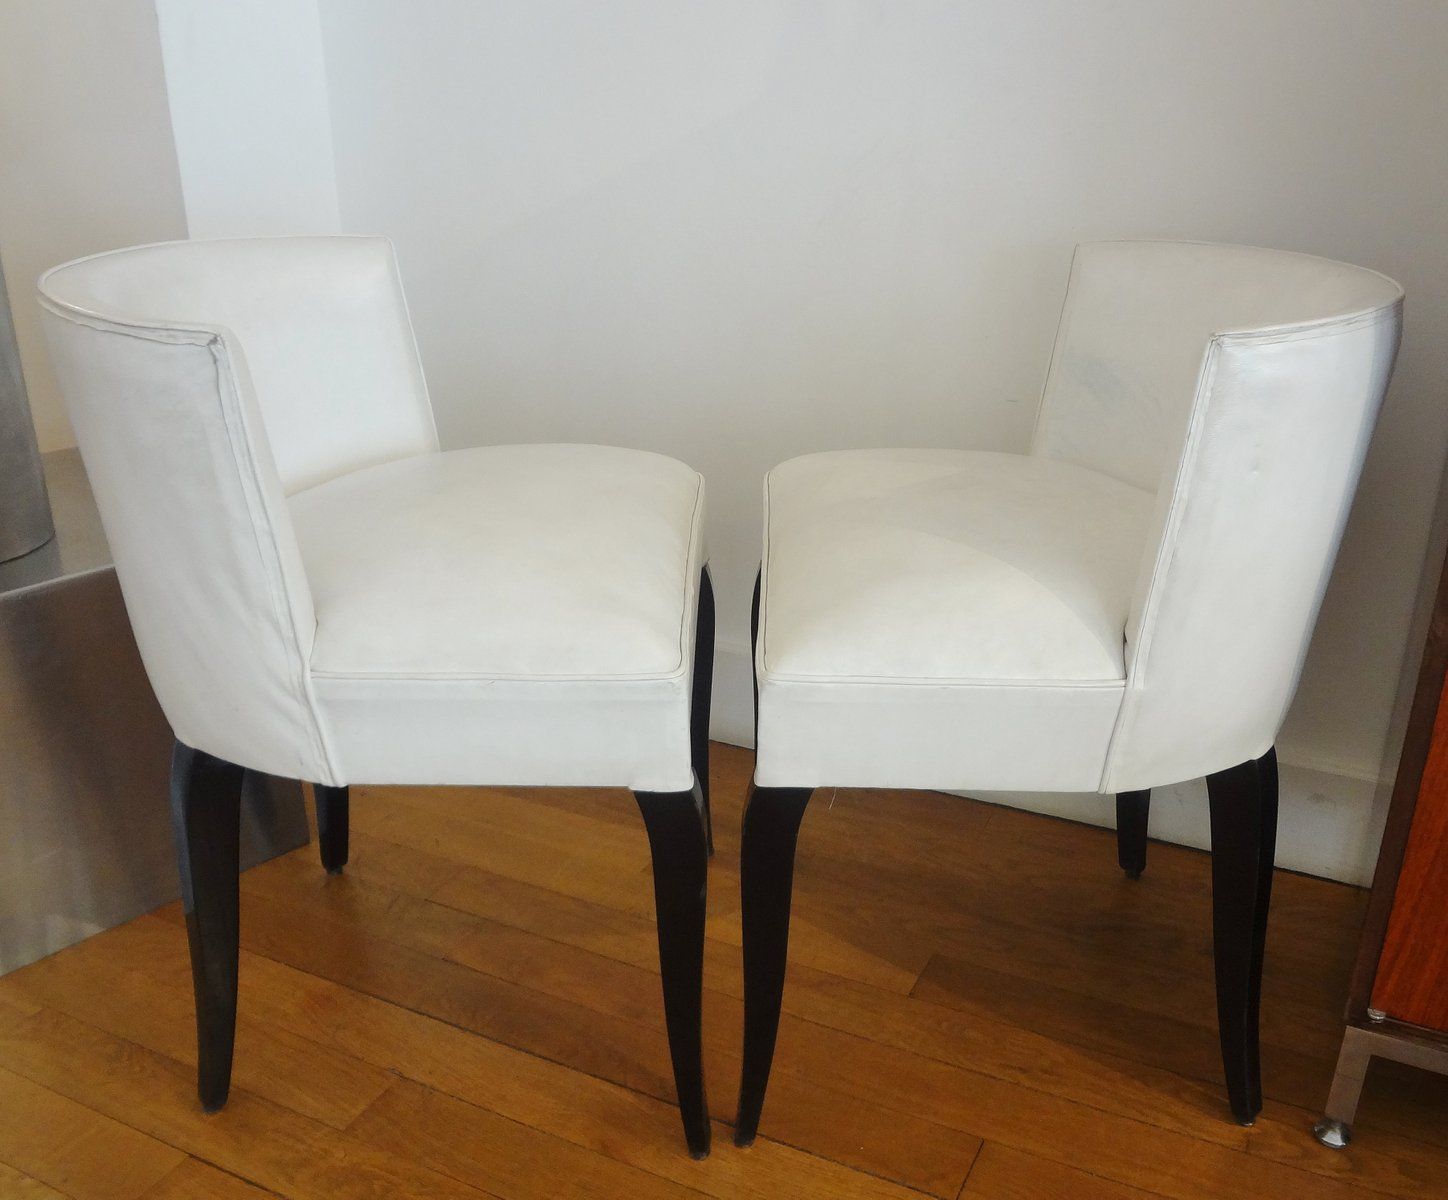 Wonderful Vintage White Side Chairs By Jacques Adnet, 1930s, Set Of 2